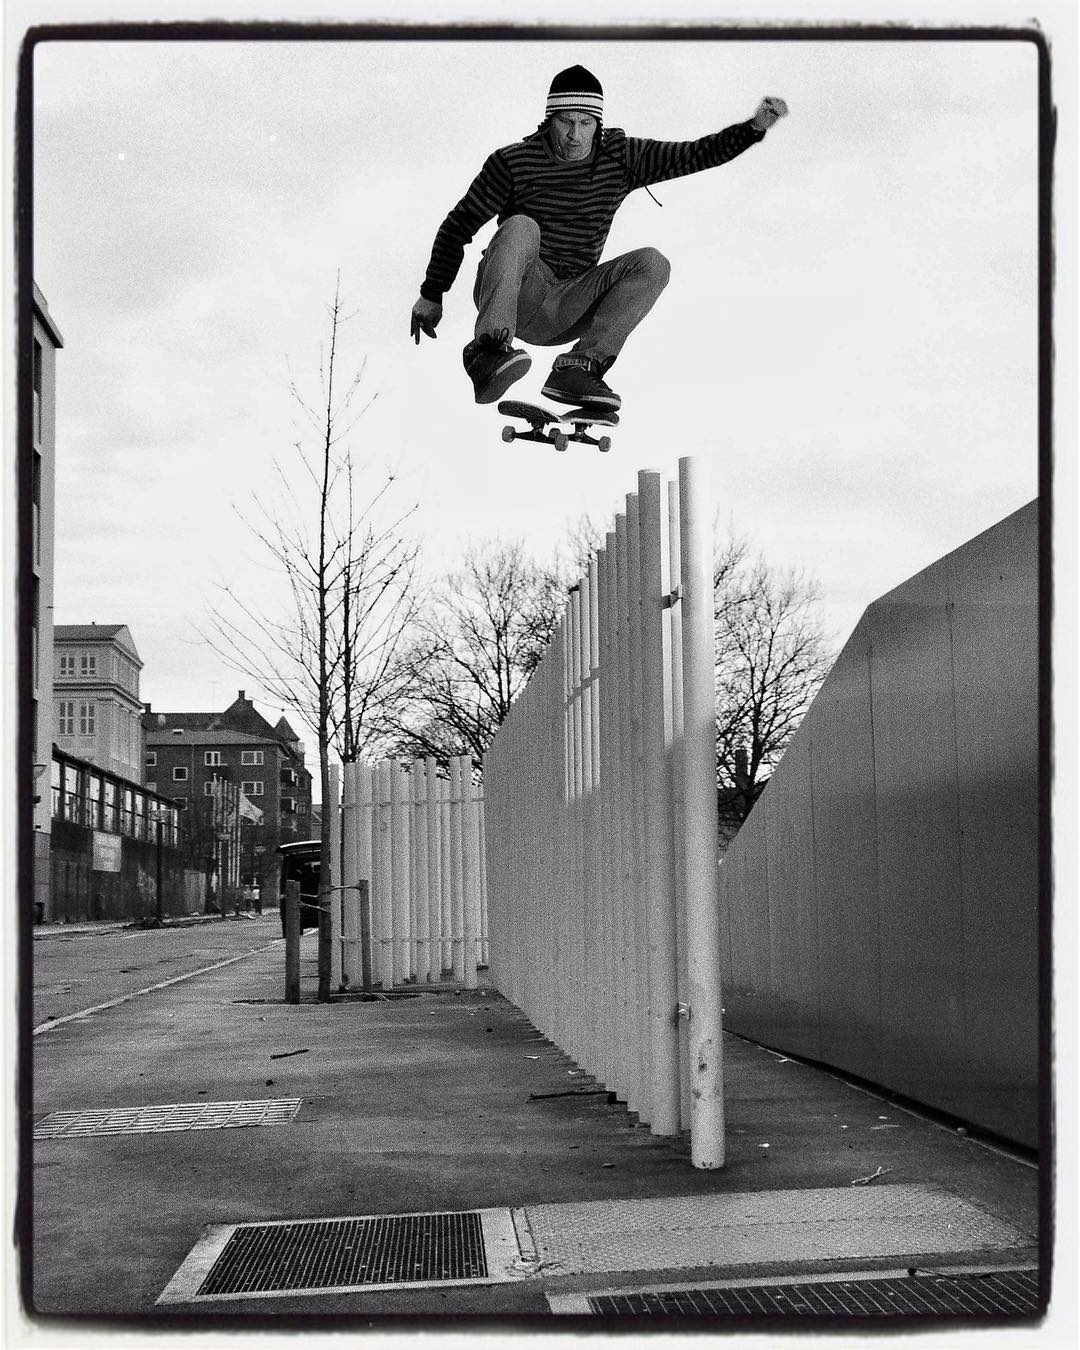 #flashbackfriday Chris Aström kickflip from bank over fence in Copenhagen, DK, 2006 #skateboarding #ollie #kickflip #streetskate #copenhagen #adio #bailgun #gerdriegerphotography